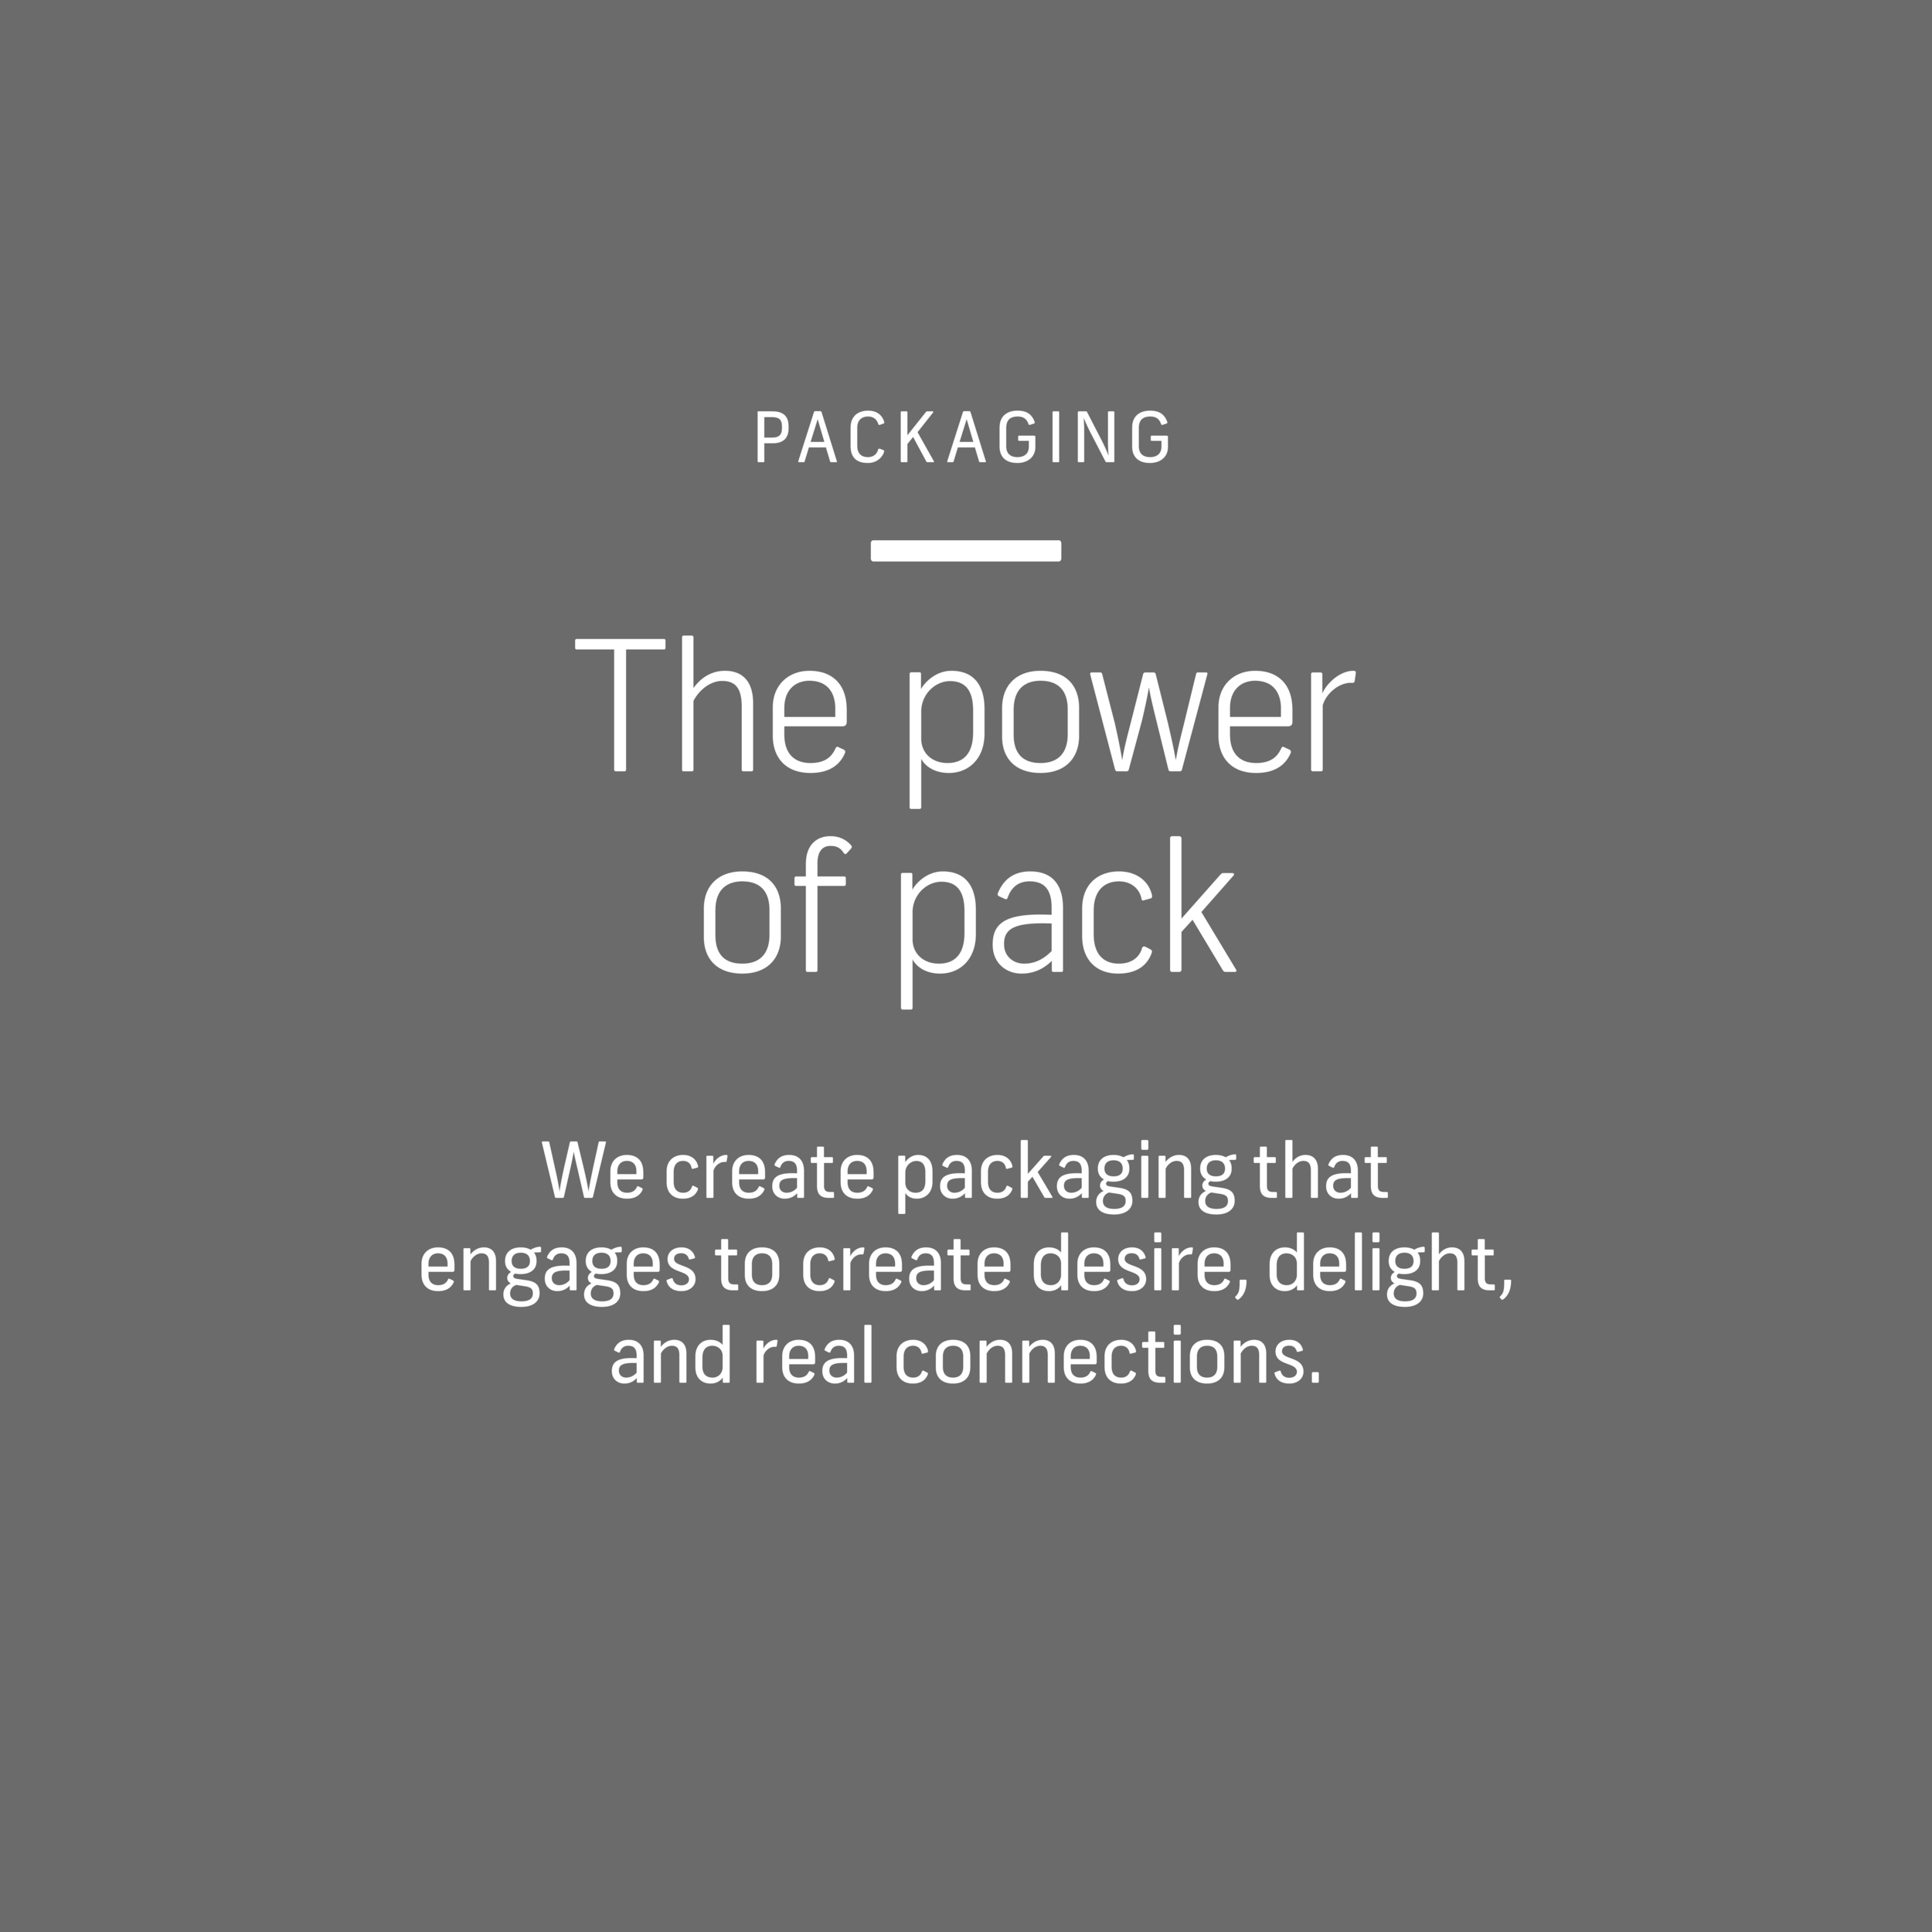 capabilities-headline-_packaging.png